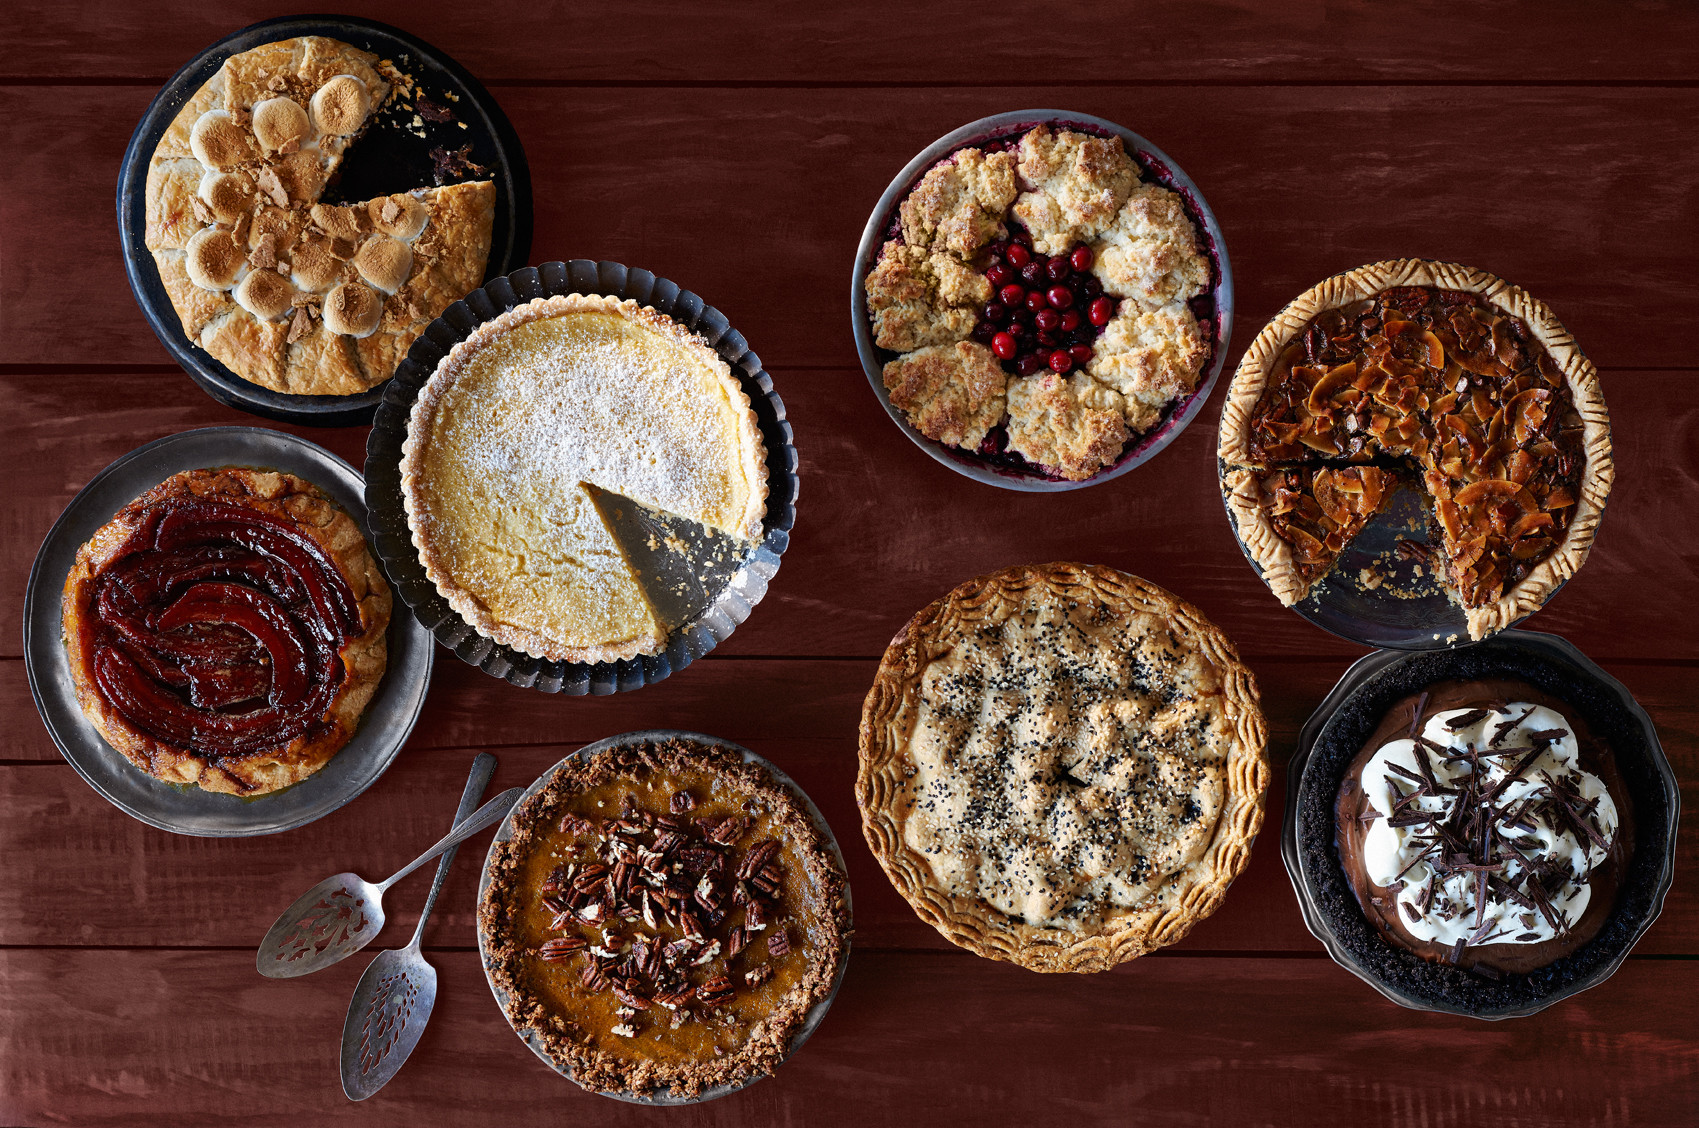 Pies To Make For Thanksgiving  38 Best Thanksgiving Pies Recipes and Ideas for